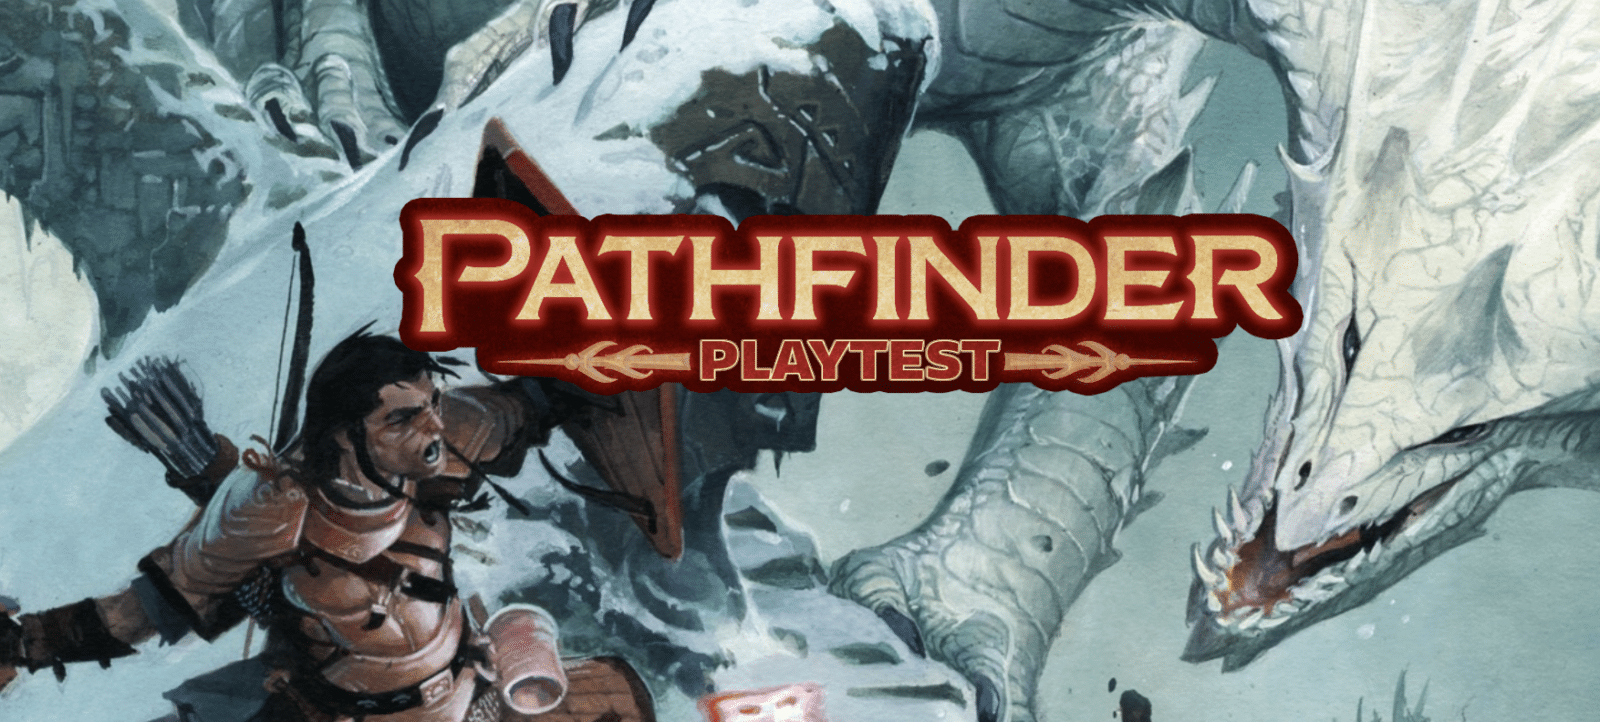 Pathfinder 2 Playtest: Erik Mona on Why You Should Try Pathfinder